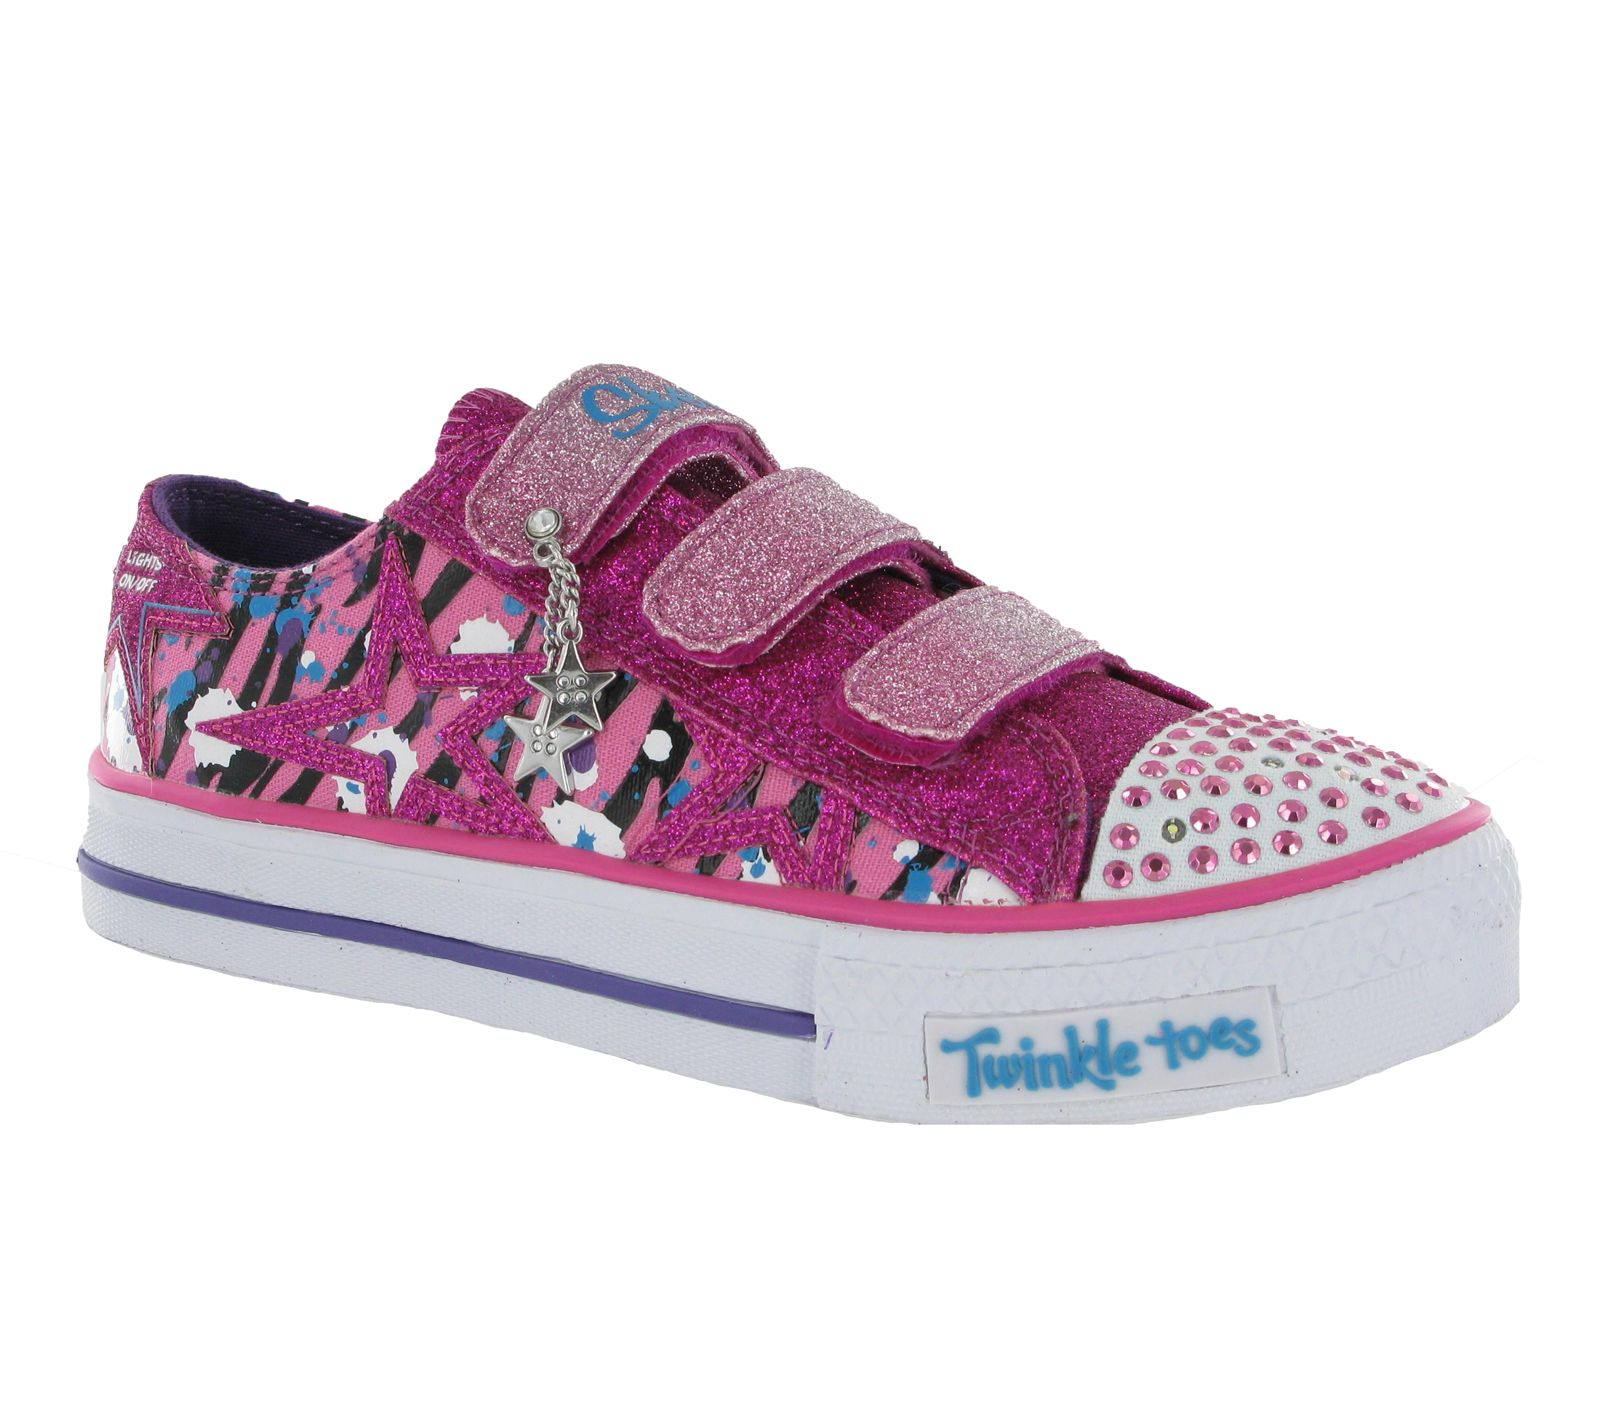 678f4c1e3 Buy skechers toddler girl sneakers   OFF50% Discounted